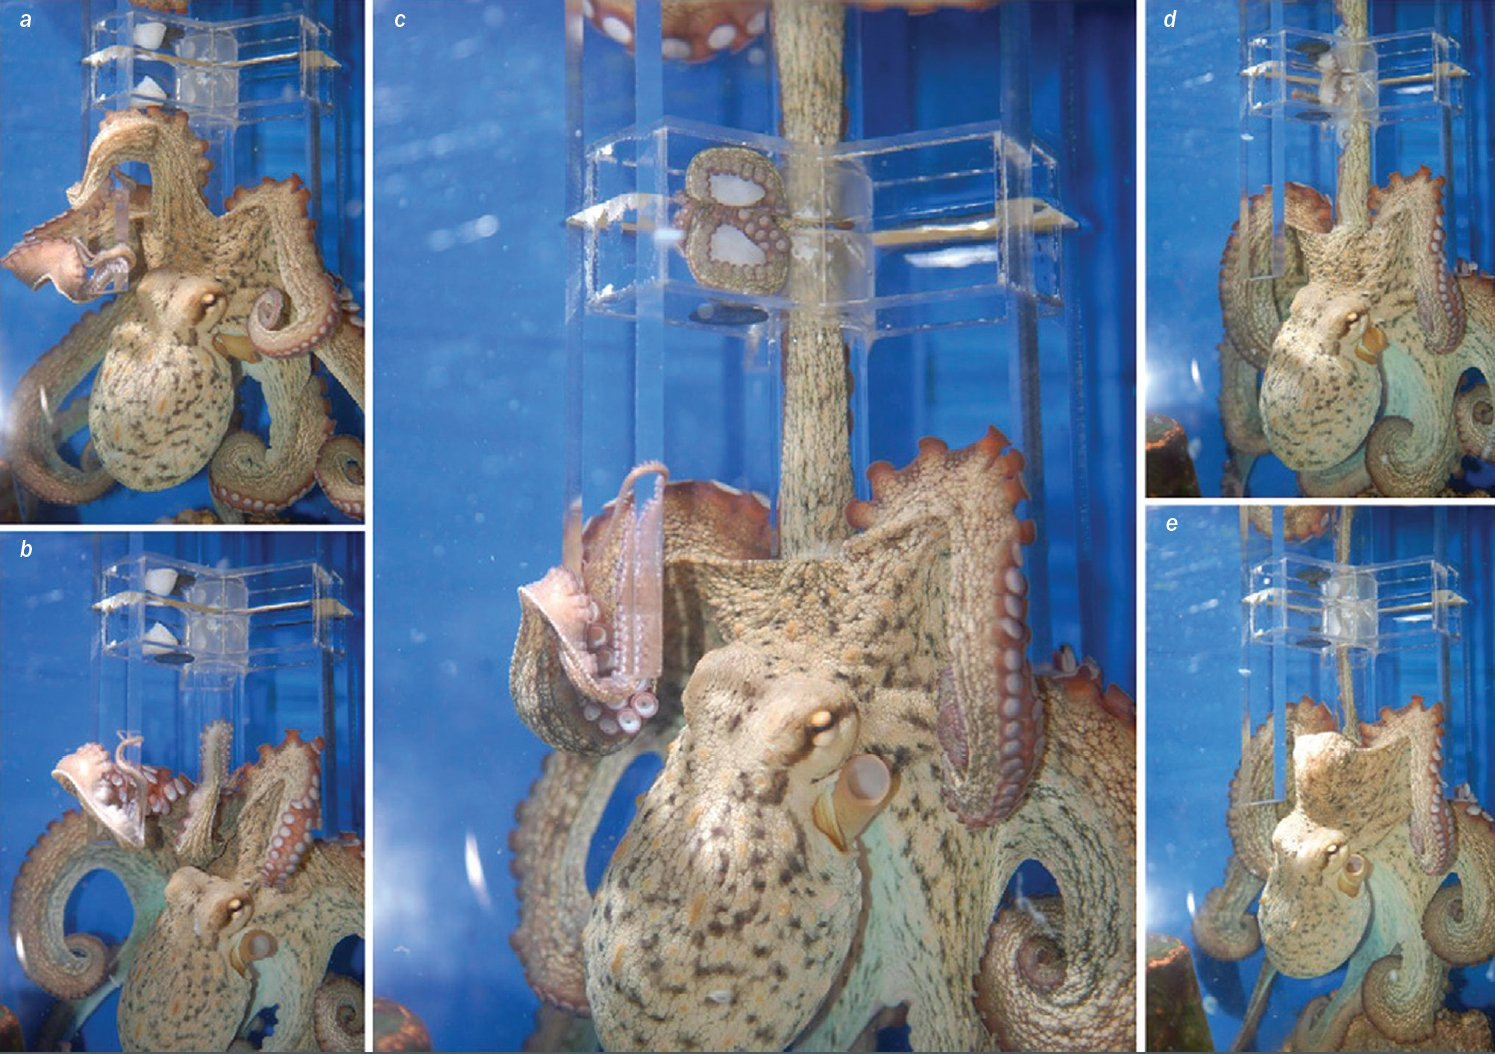 The octopus uses its eyes as a guide, but its arm functions independently from the brain in searching for food through this maze. Photo credit: Scientific American